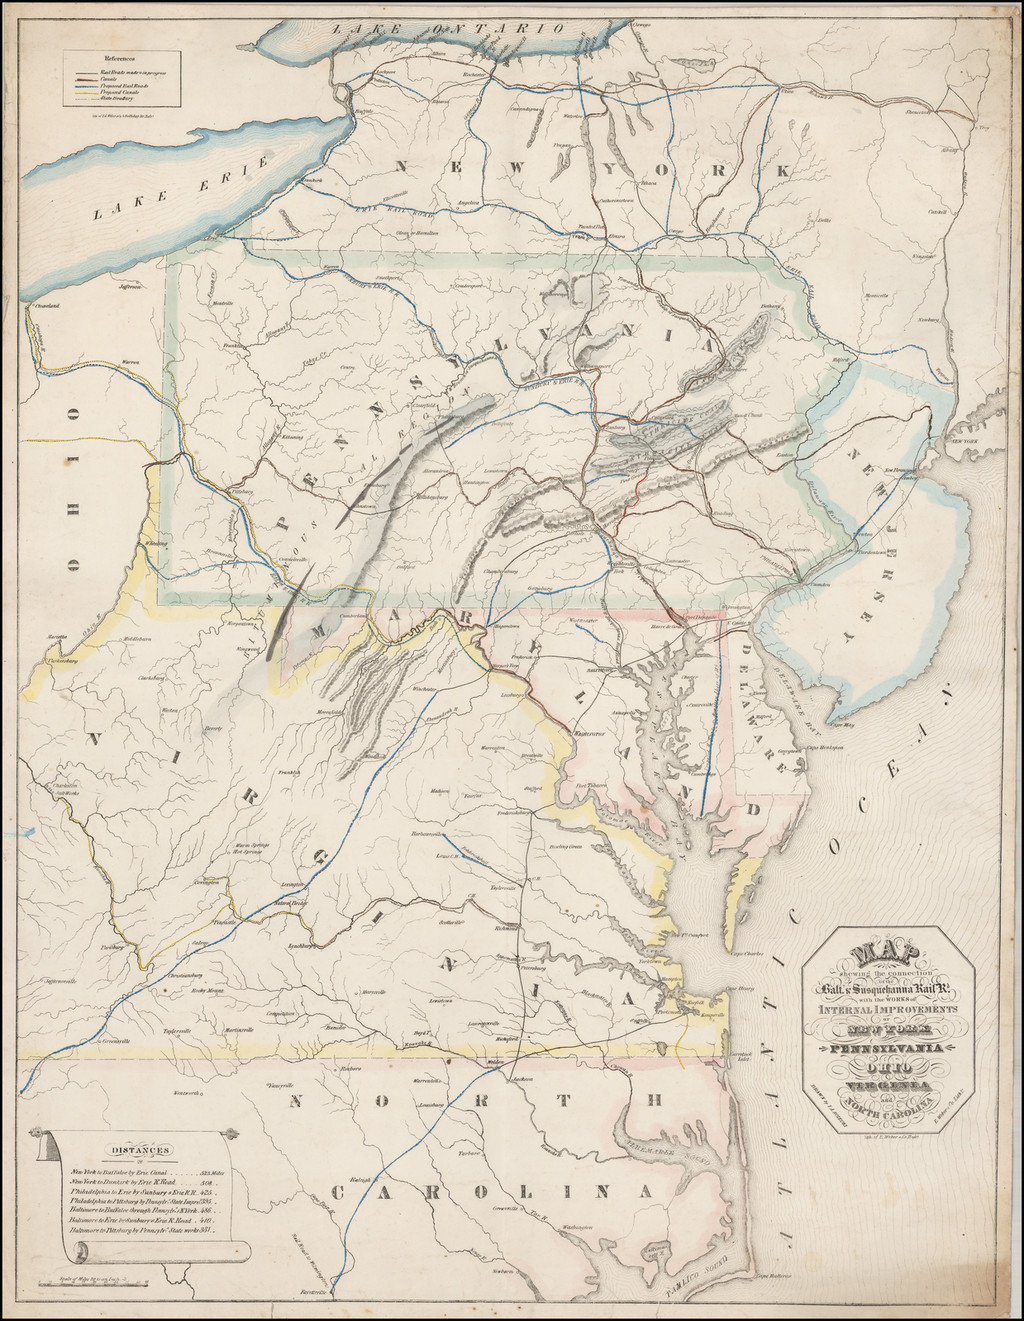 Map shewing the connection of the Balt. & Susquehanna Rail-Rd. with the Works of Internal Improvements of New York Pennsylanvia Ohio Virginia and North Carolina. By I. A. Soiecki